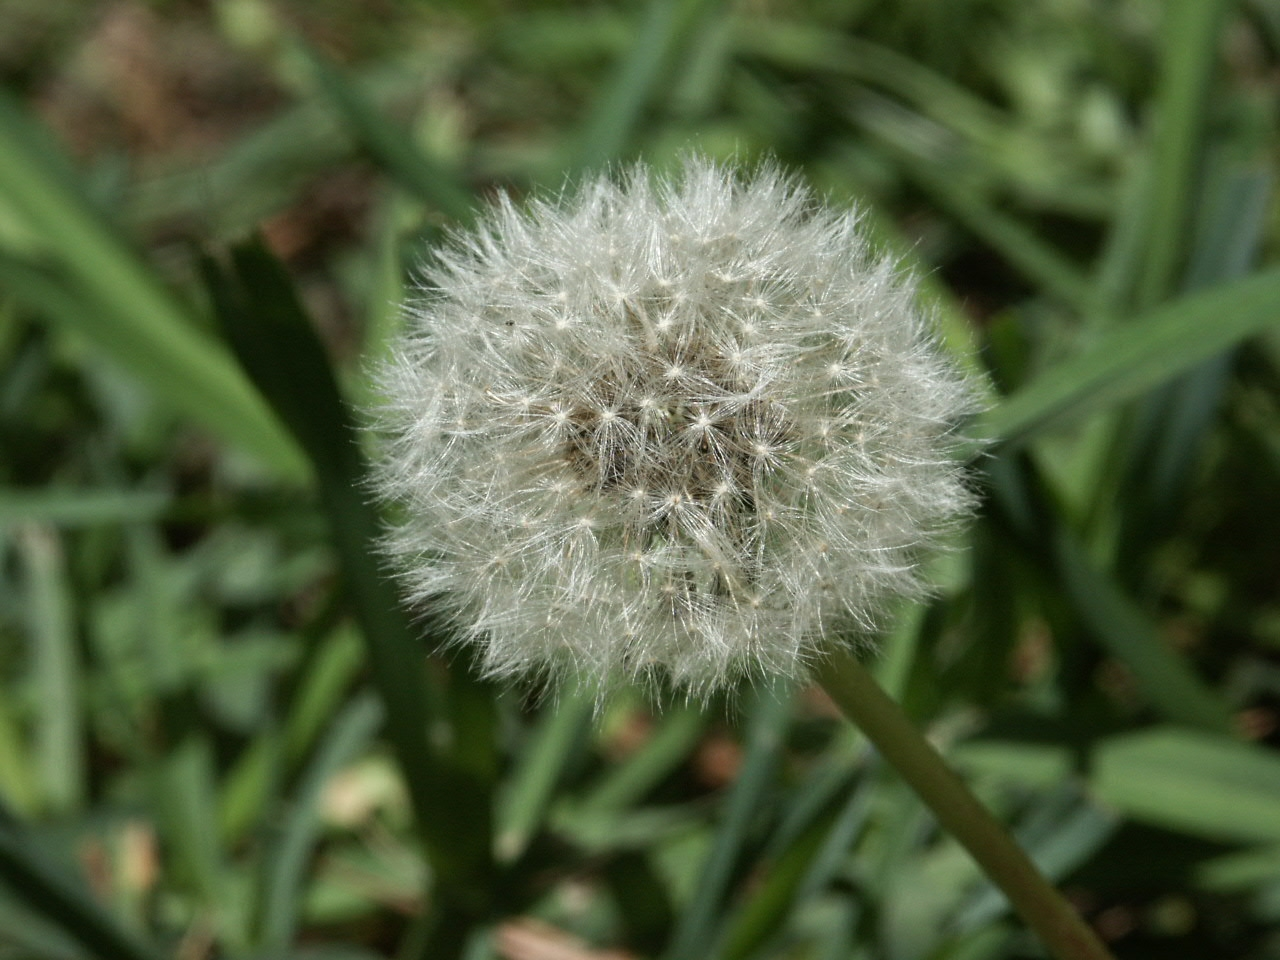 all parts of a dandelion are edible